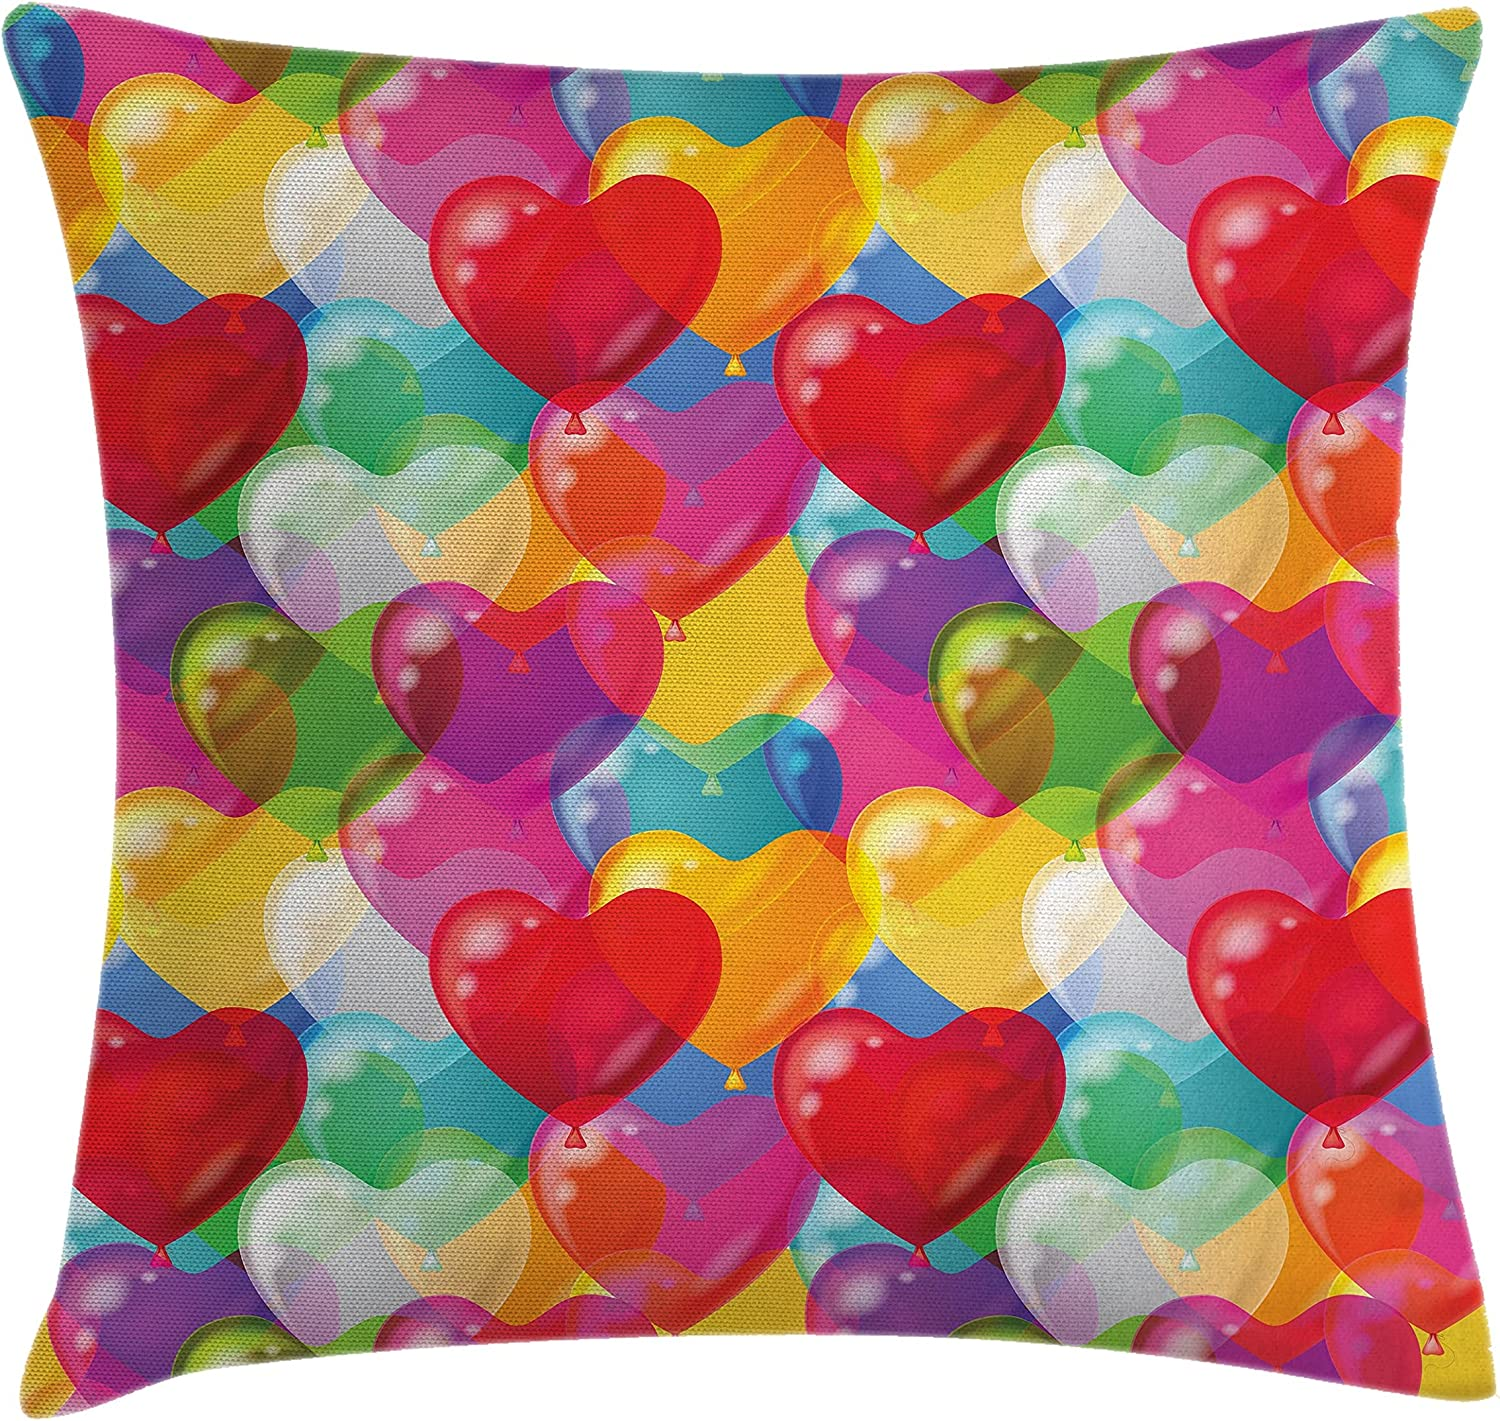 Amazon Com Ambesonne Love Throw Pillow Cushion Cover Heart Shaped Balloons In Colorful Illustration Cheerful Birthday Carnival Happiness Decorative Square Accent Pillow Case 16 X 16 Multicolor Home Kitchen